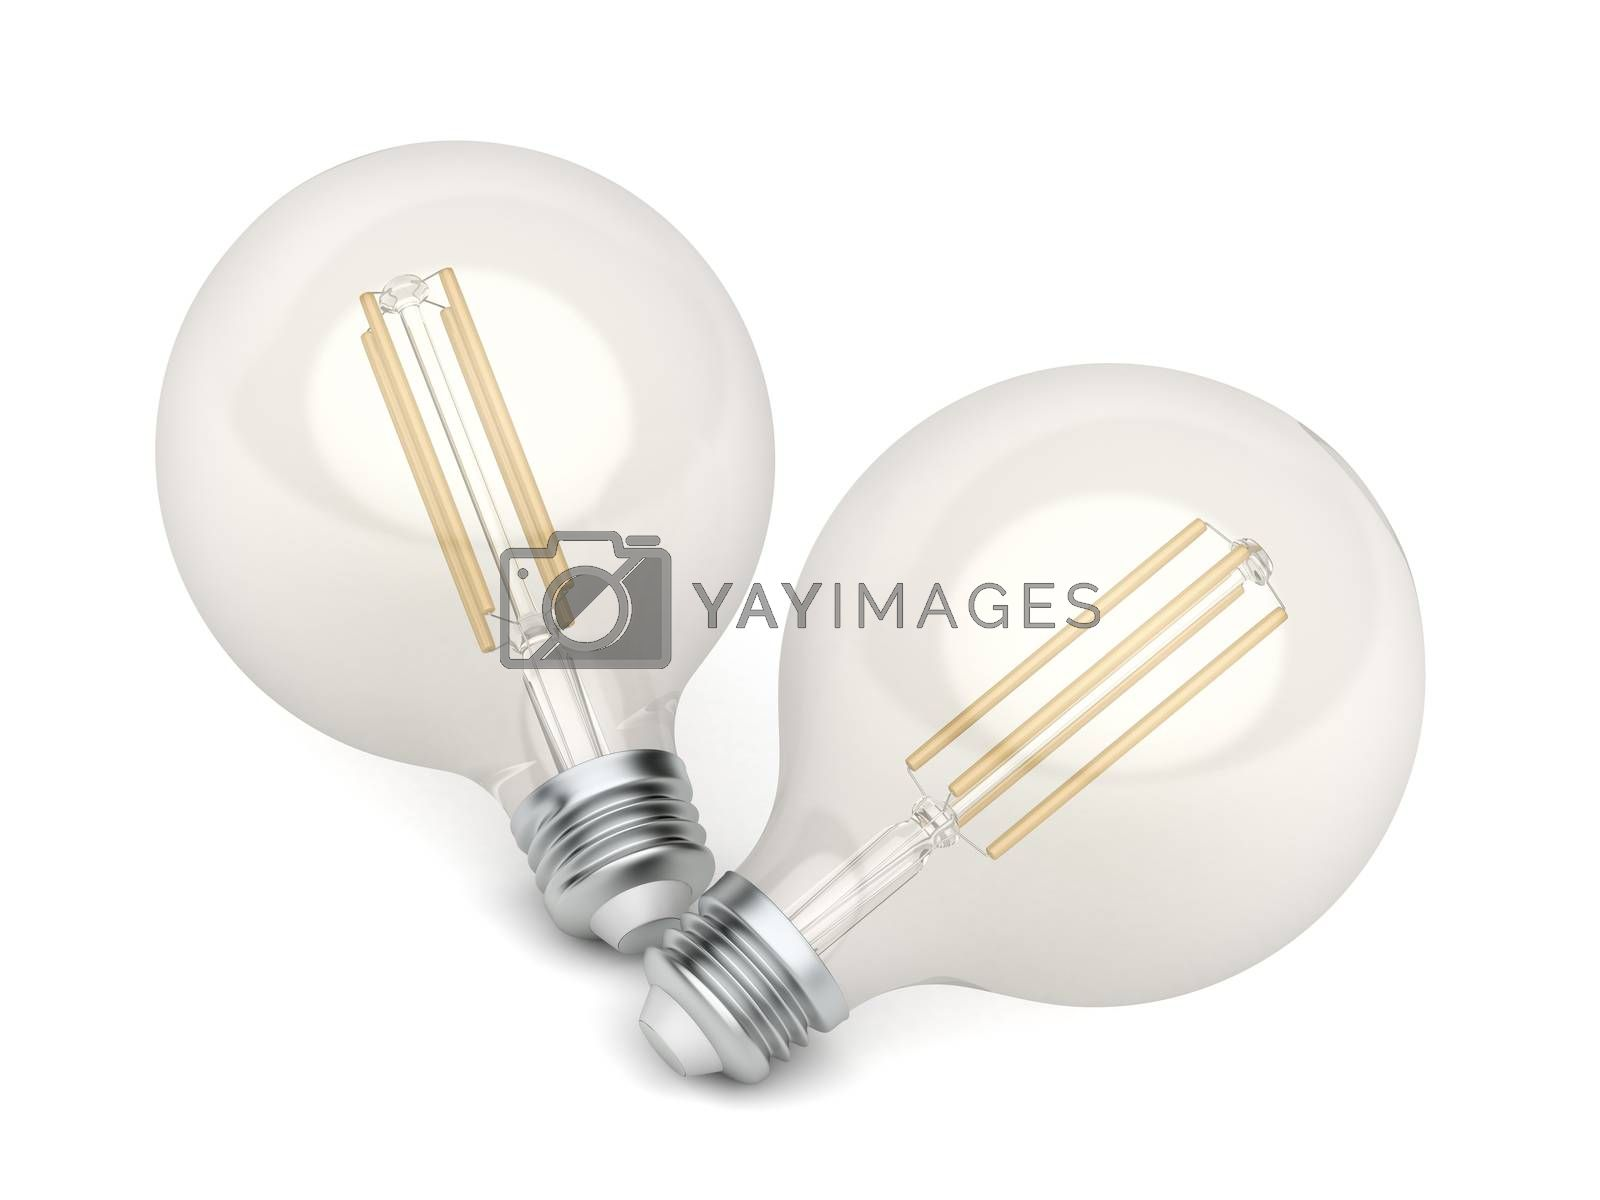 Two decorative LED light bulbs on white background